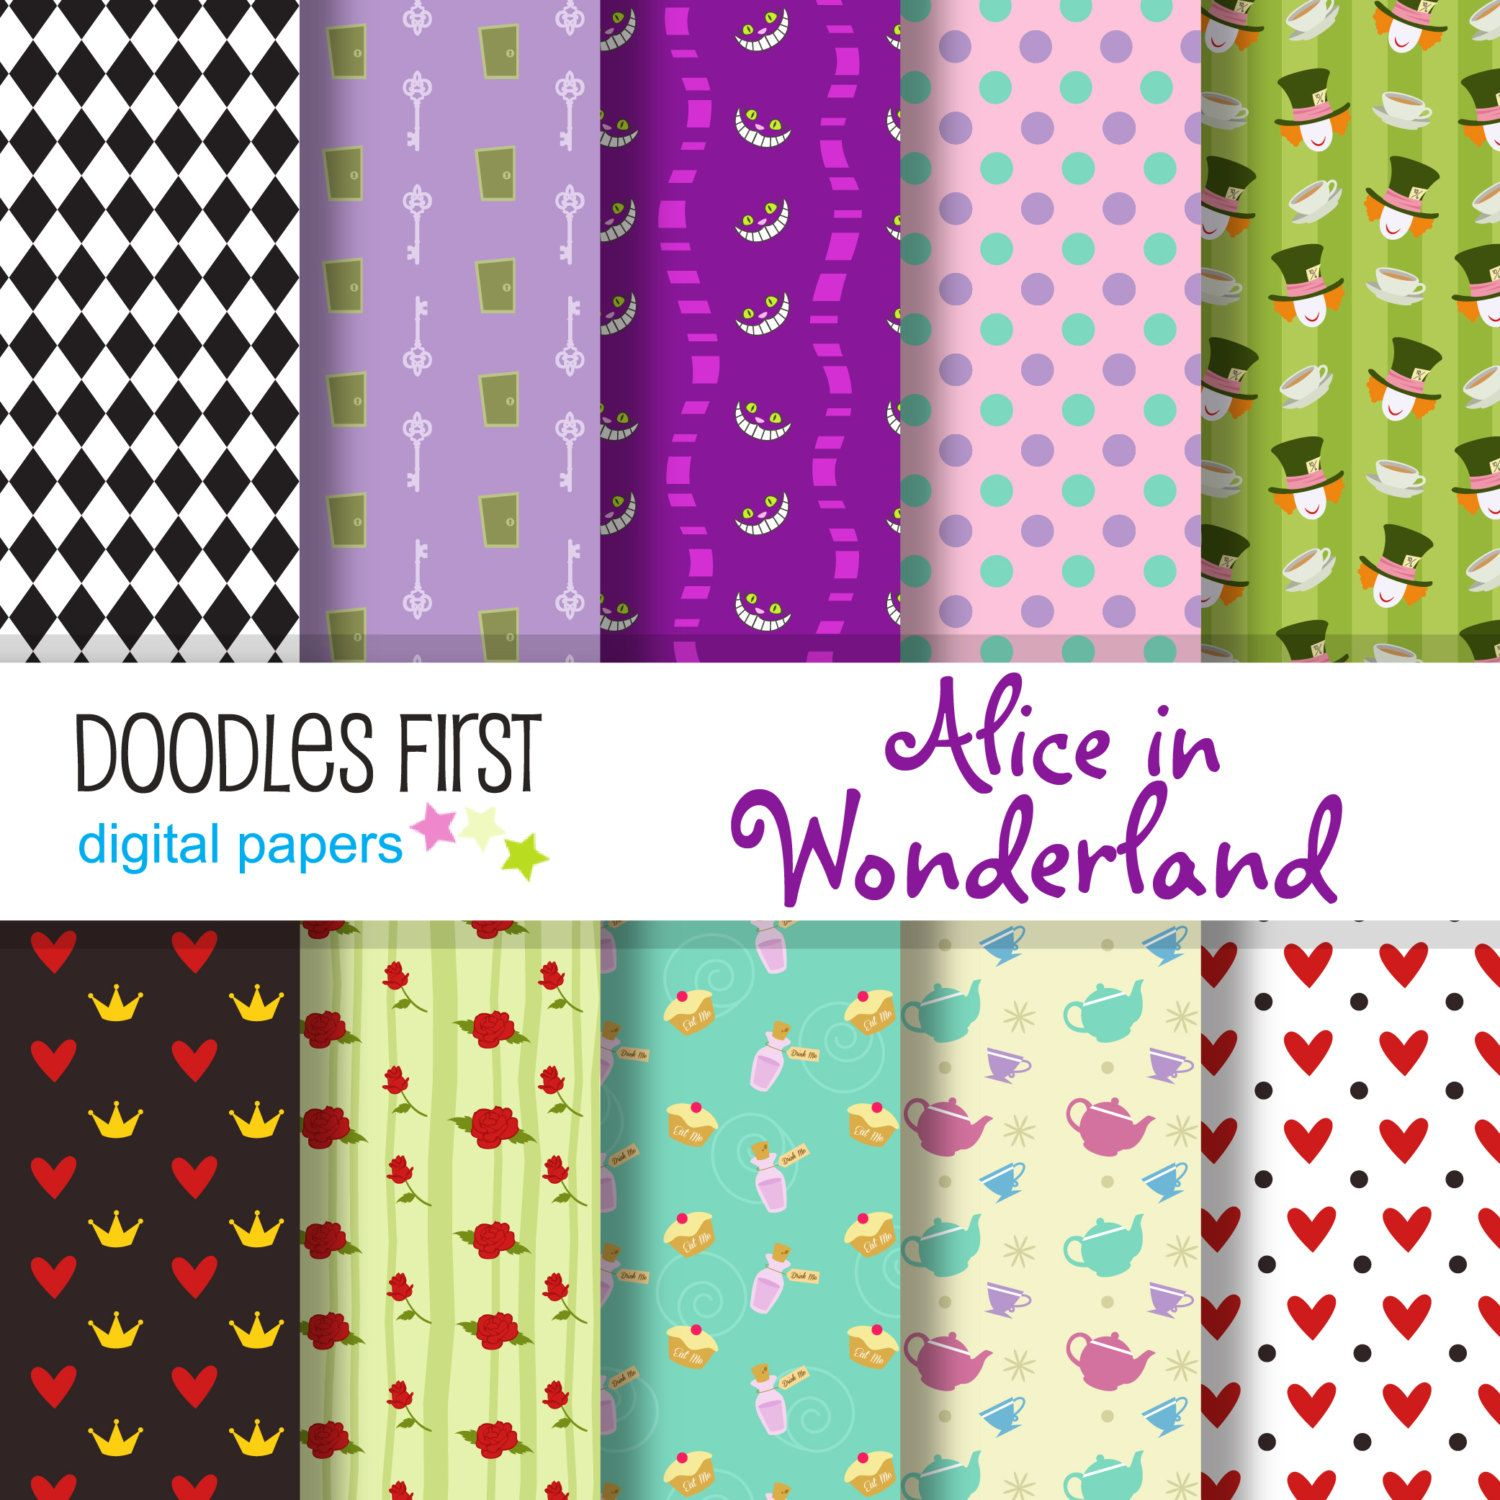 Alice in wonderland digital paper pack includes 10 for alice in wonderland digital paper pack includes 10 for scrapbooking paper crafts doodlesfirst 299 usd jeuxipadfo Choice Image